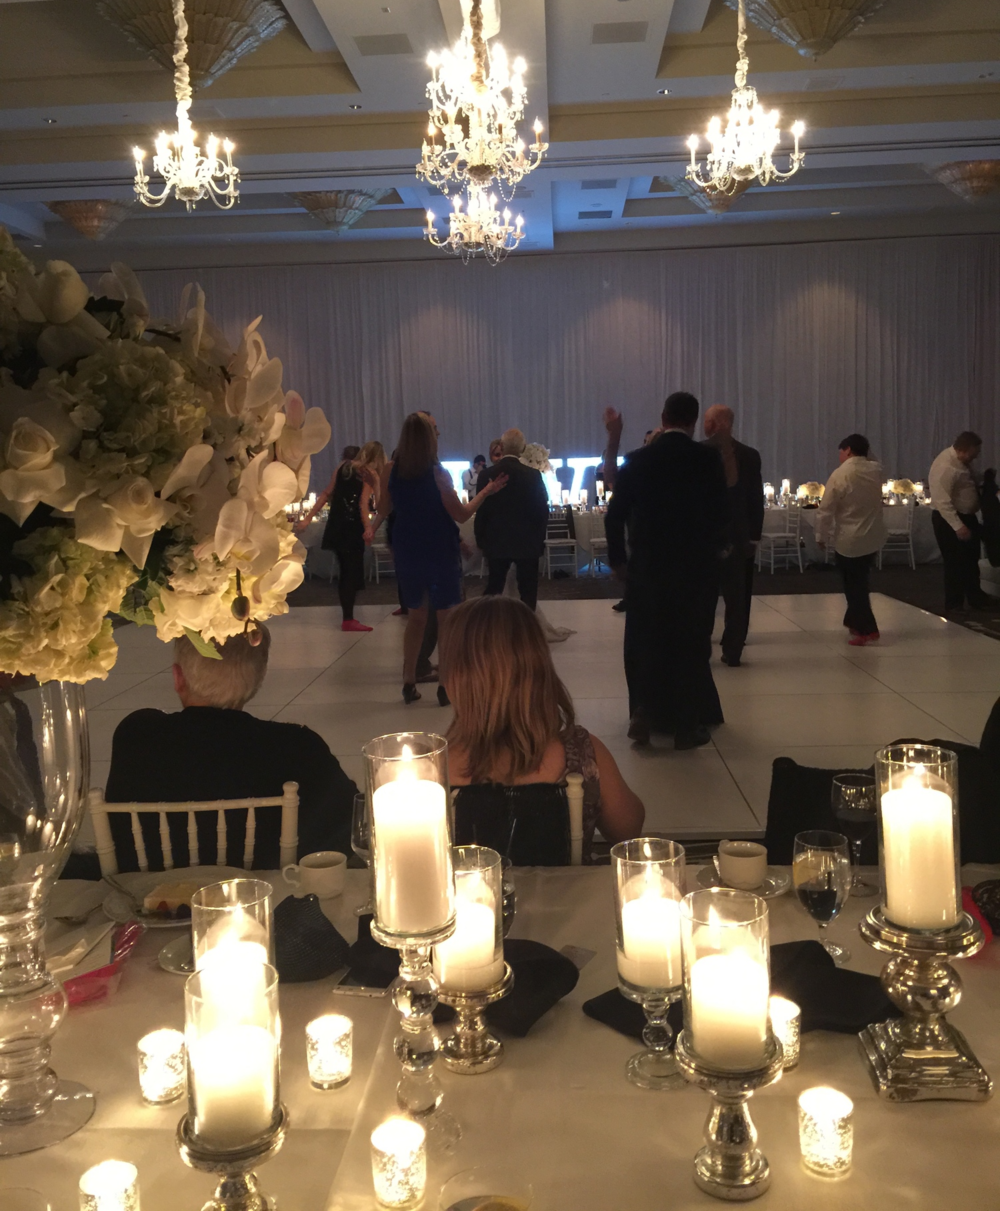 Guests took to the dance floor, celebrating our newlyweds and enjoying the final moments of 2014.   Photo by   Andrea Eppolito.